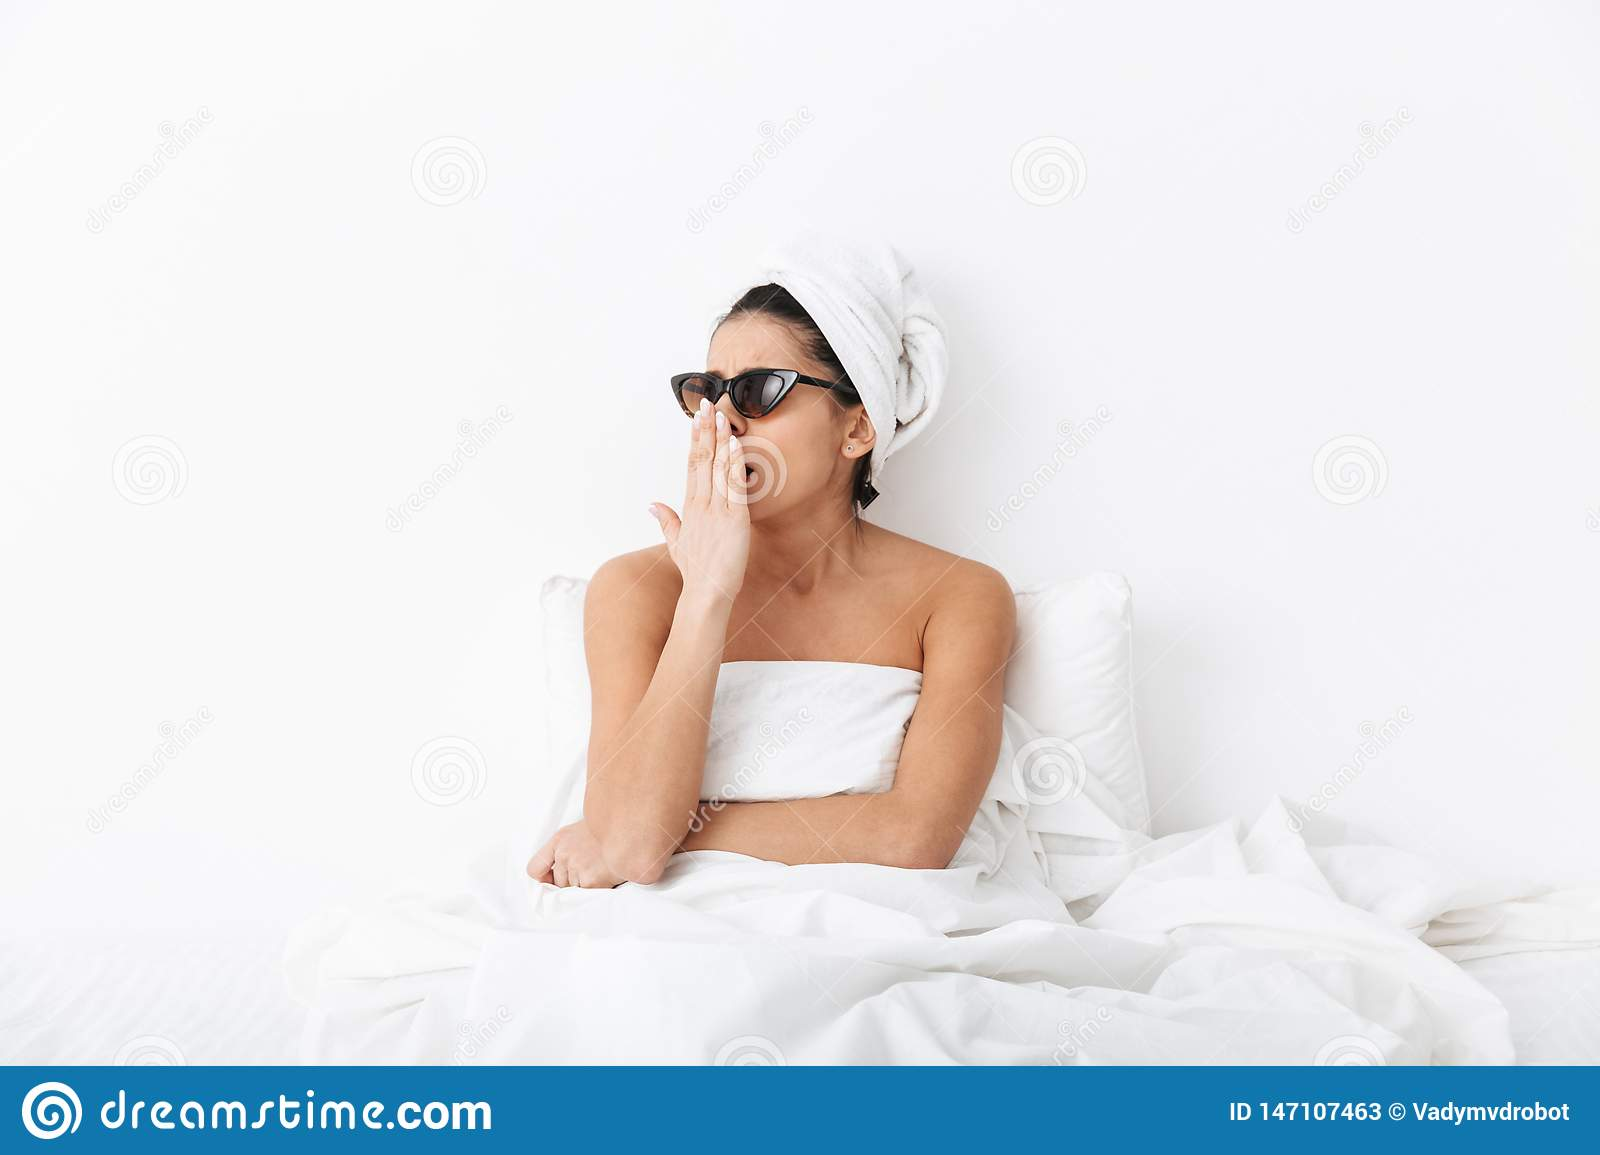 Yawning woman with towel on head lies in bed under blanket isolated over white wall background wearing sunglasses